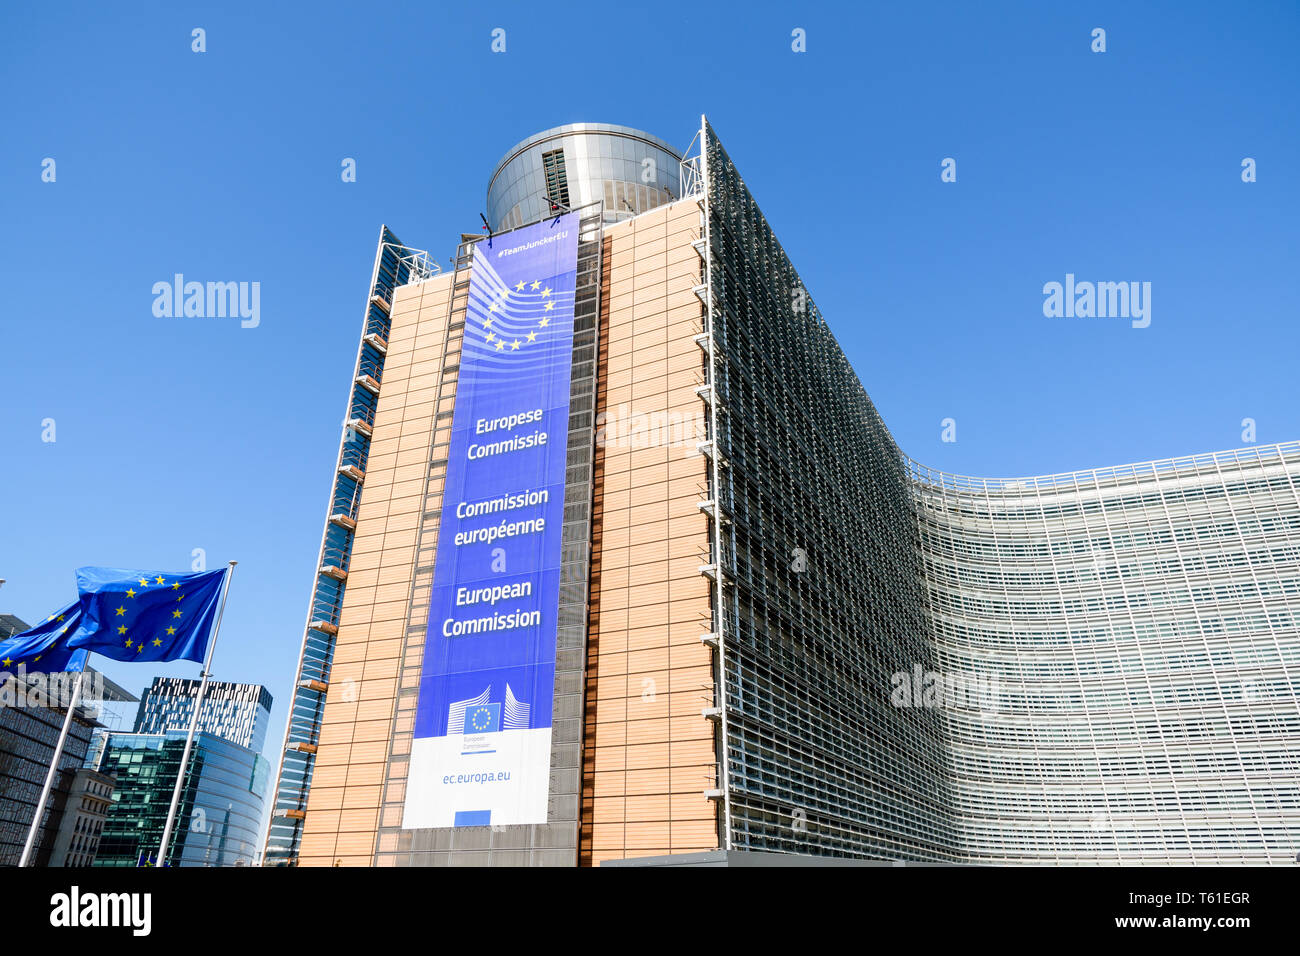 Low angle view of the large banner on the facade of the southern wing of the Berlaymont building, seat of the European Commission in Brussels, Belgium - Stock Image